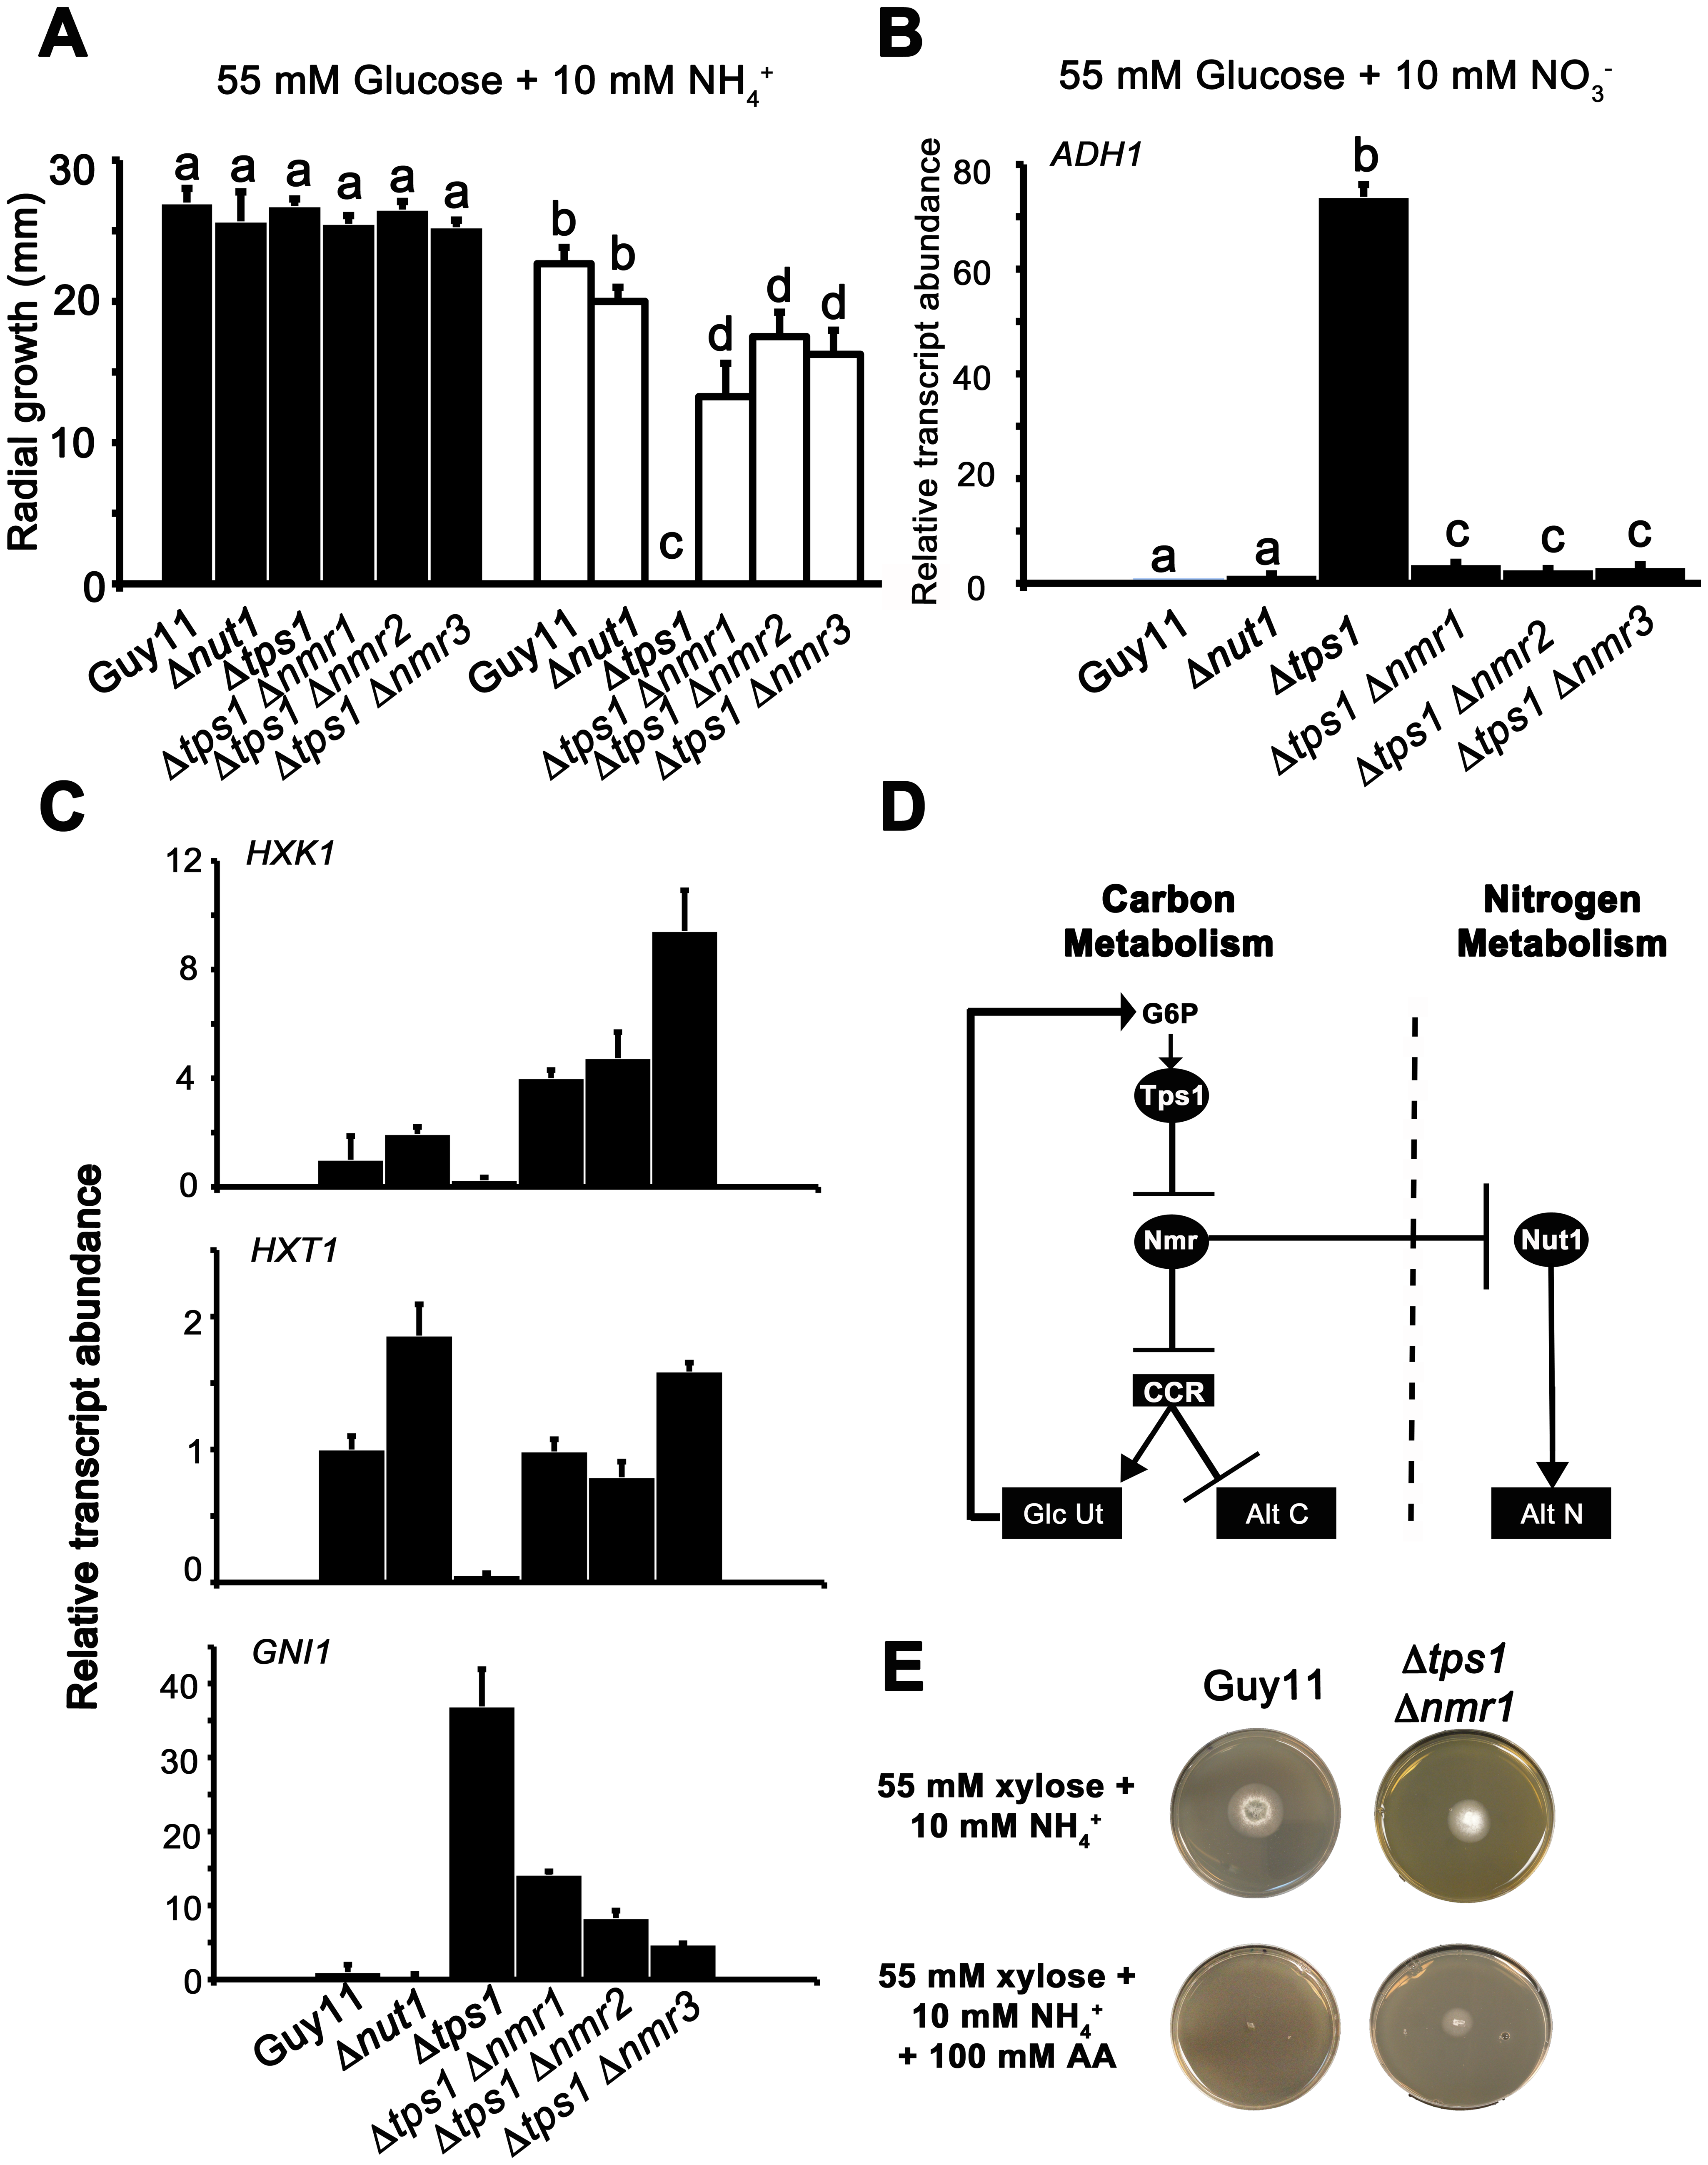 The Nmr1-3 inhibitor proteins regulate CCR independently of Nut1.